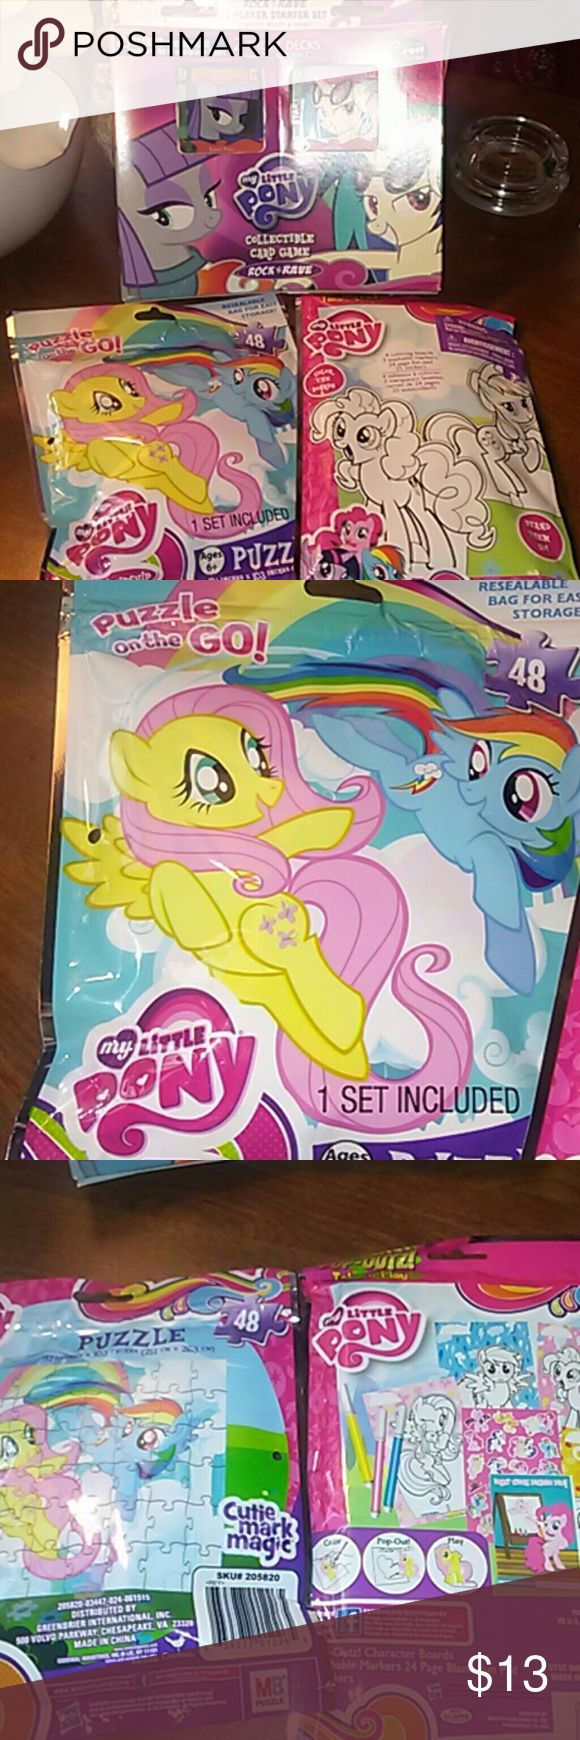 """New My Little Pony Bundle /3 items + GIFT New bundle. 3 items from My Little Pony plus including a free surprise  gift w purchase!!  """"Rock n Rave"""" Collectible card game w 2 theme deck cards and 2 exclusive foil cards!! Also a 48 piece puzzle in a resealable storage pouch. And My Little Pony Activity set which includes 4 pop-outz! Character Boards, 3 washable markers, 24 page blank fun pad and 25 stickers. Hours and oodles of fun for girls!! My Little Pony Accessories"""